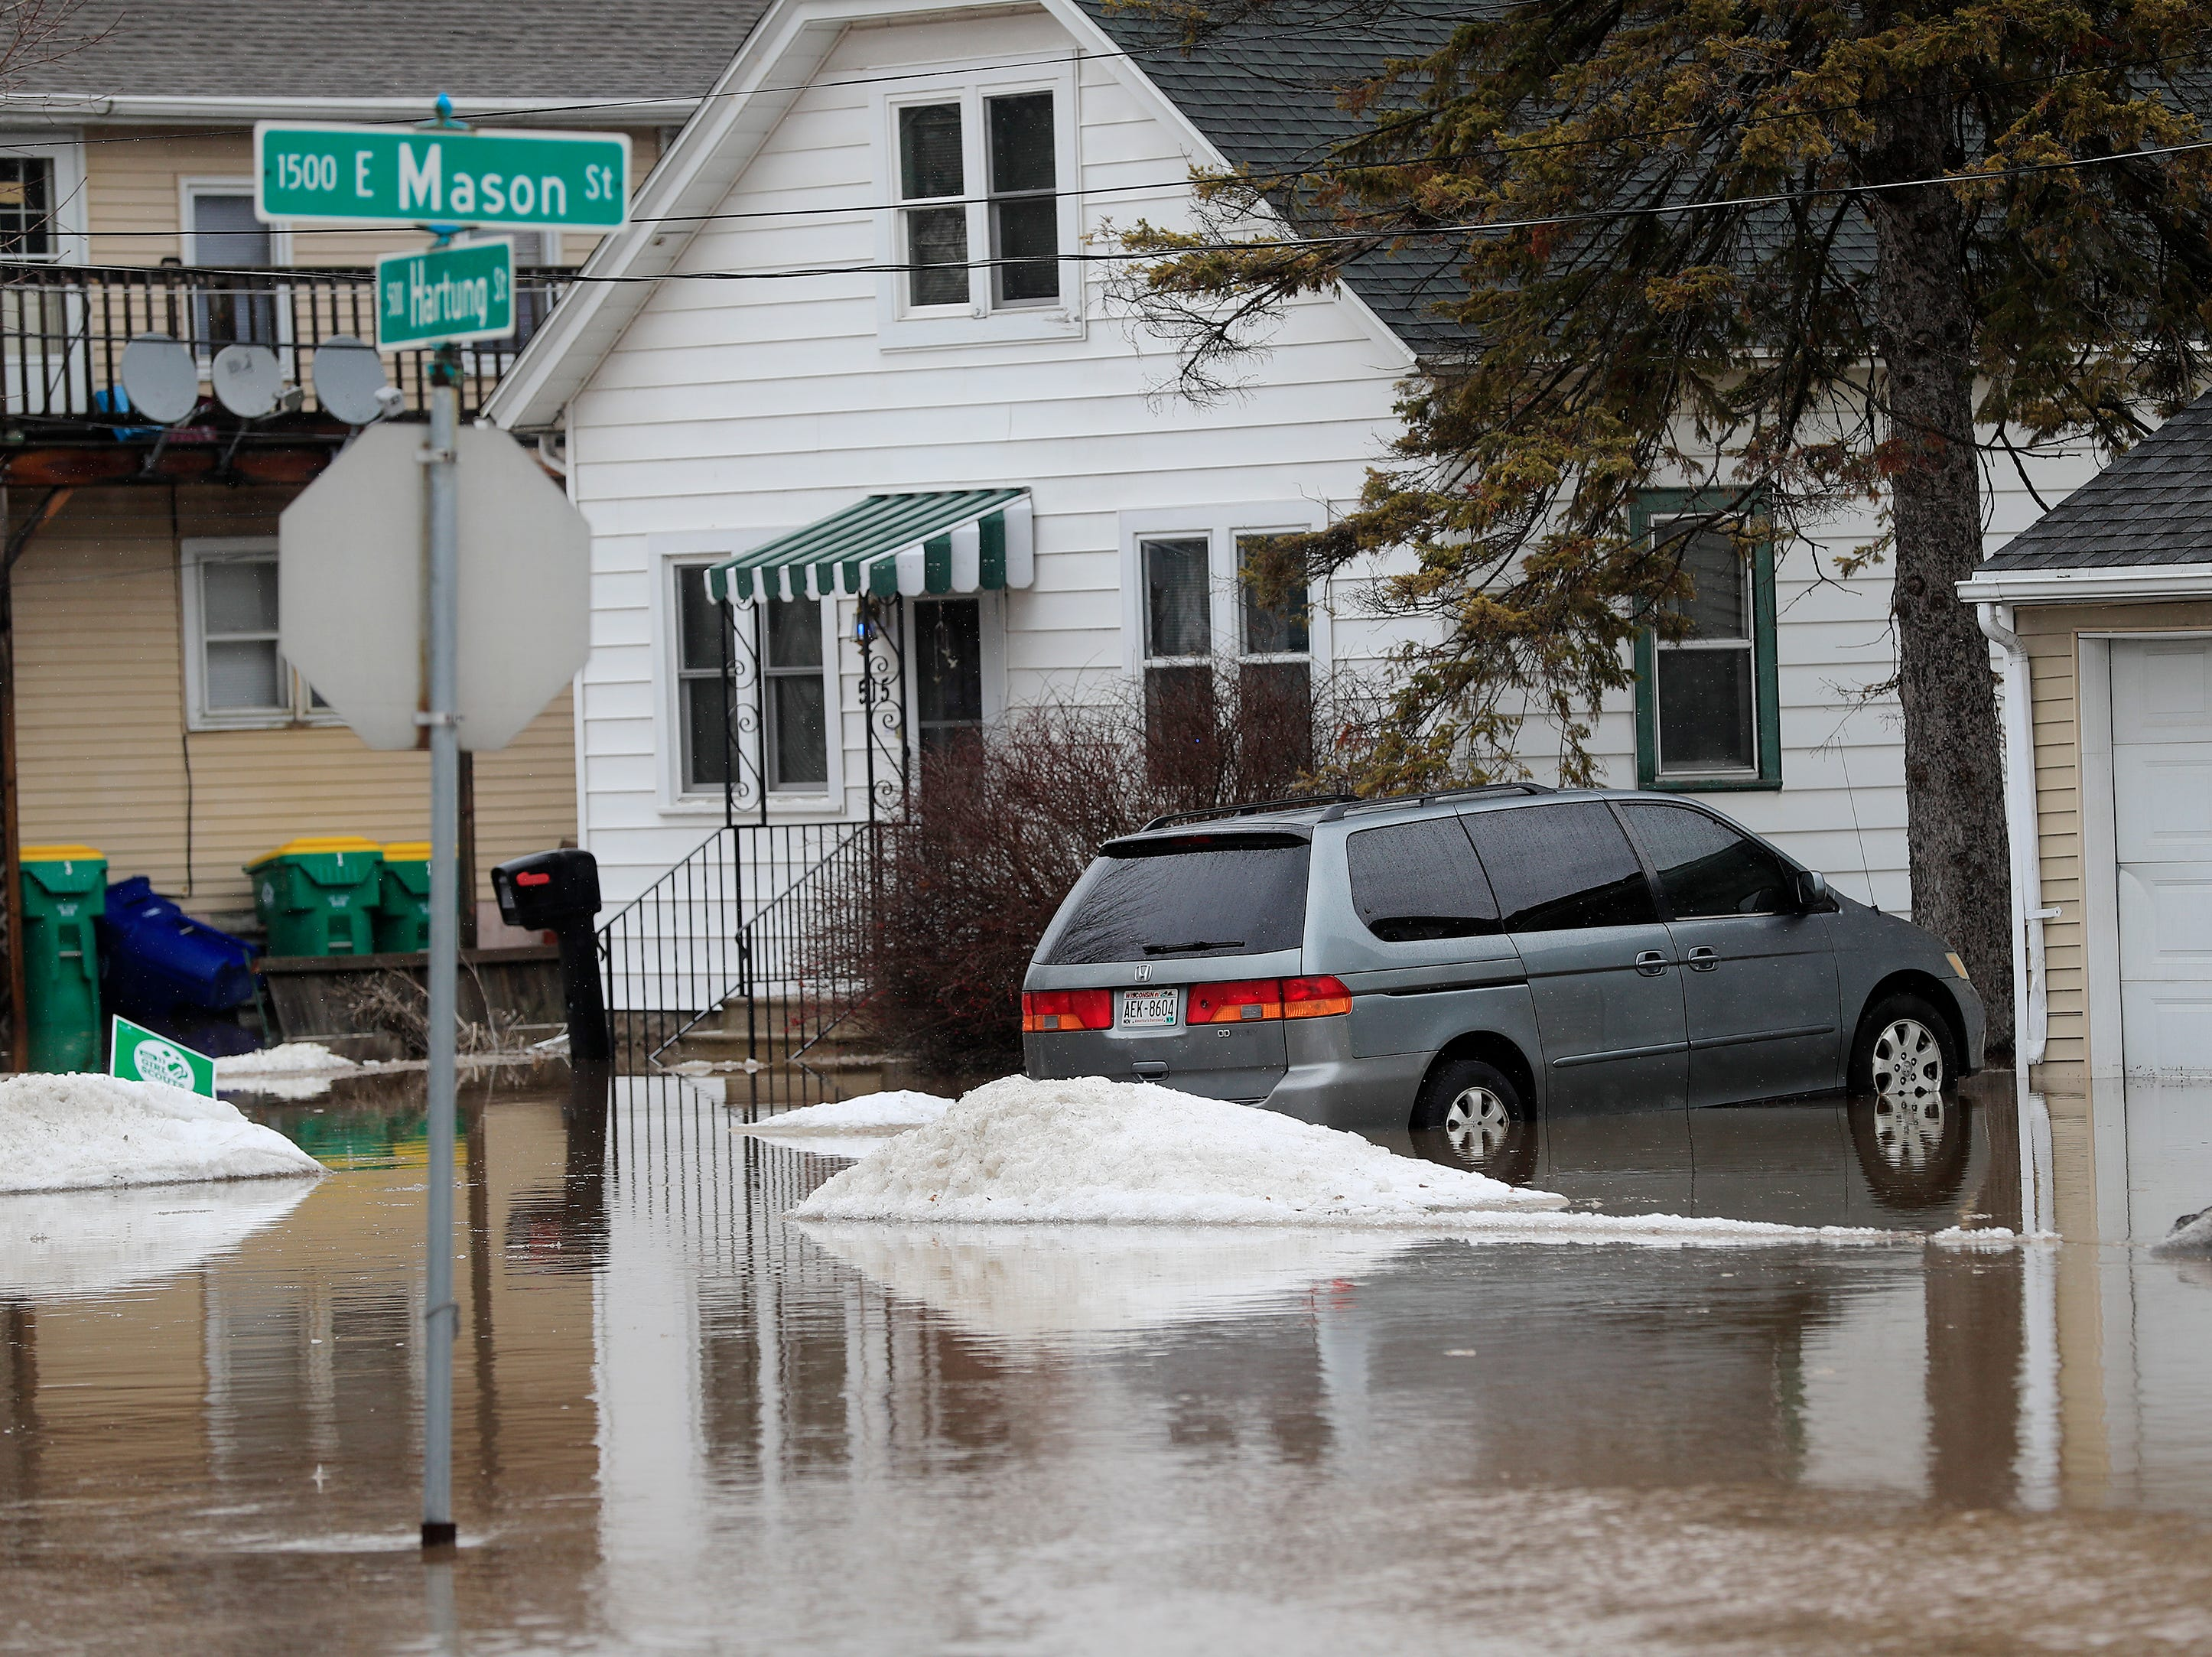 A vehicle is parked in standing water near the East river on Friday, March 15, 2019 in Green Bay, Wis.